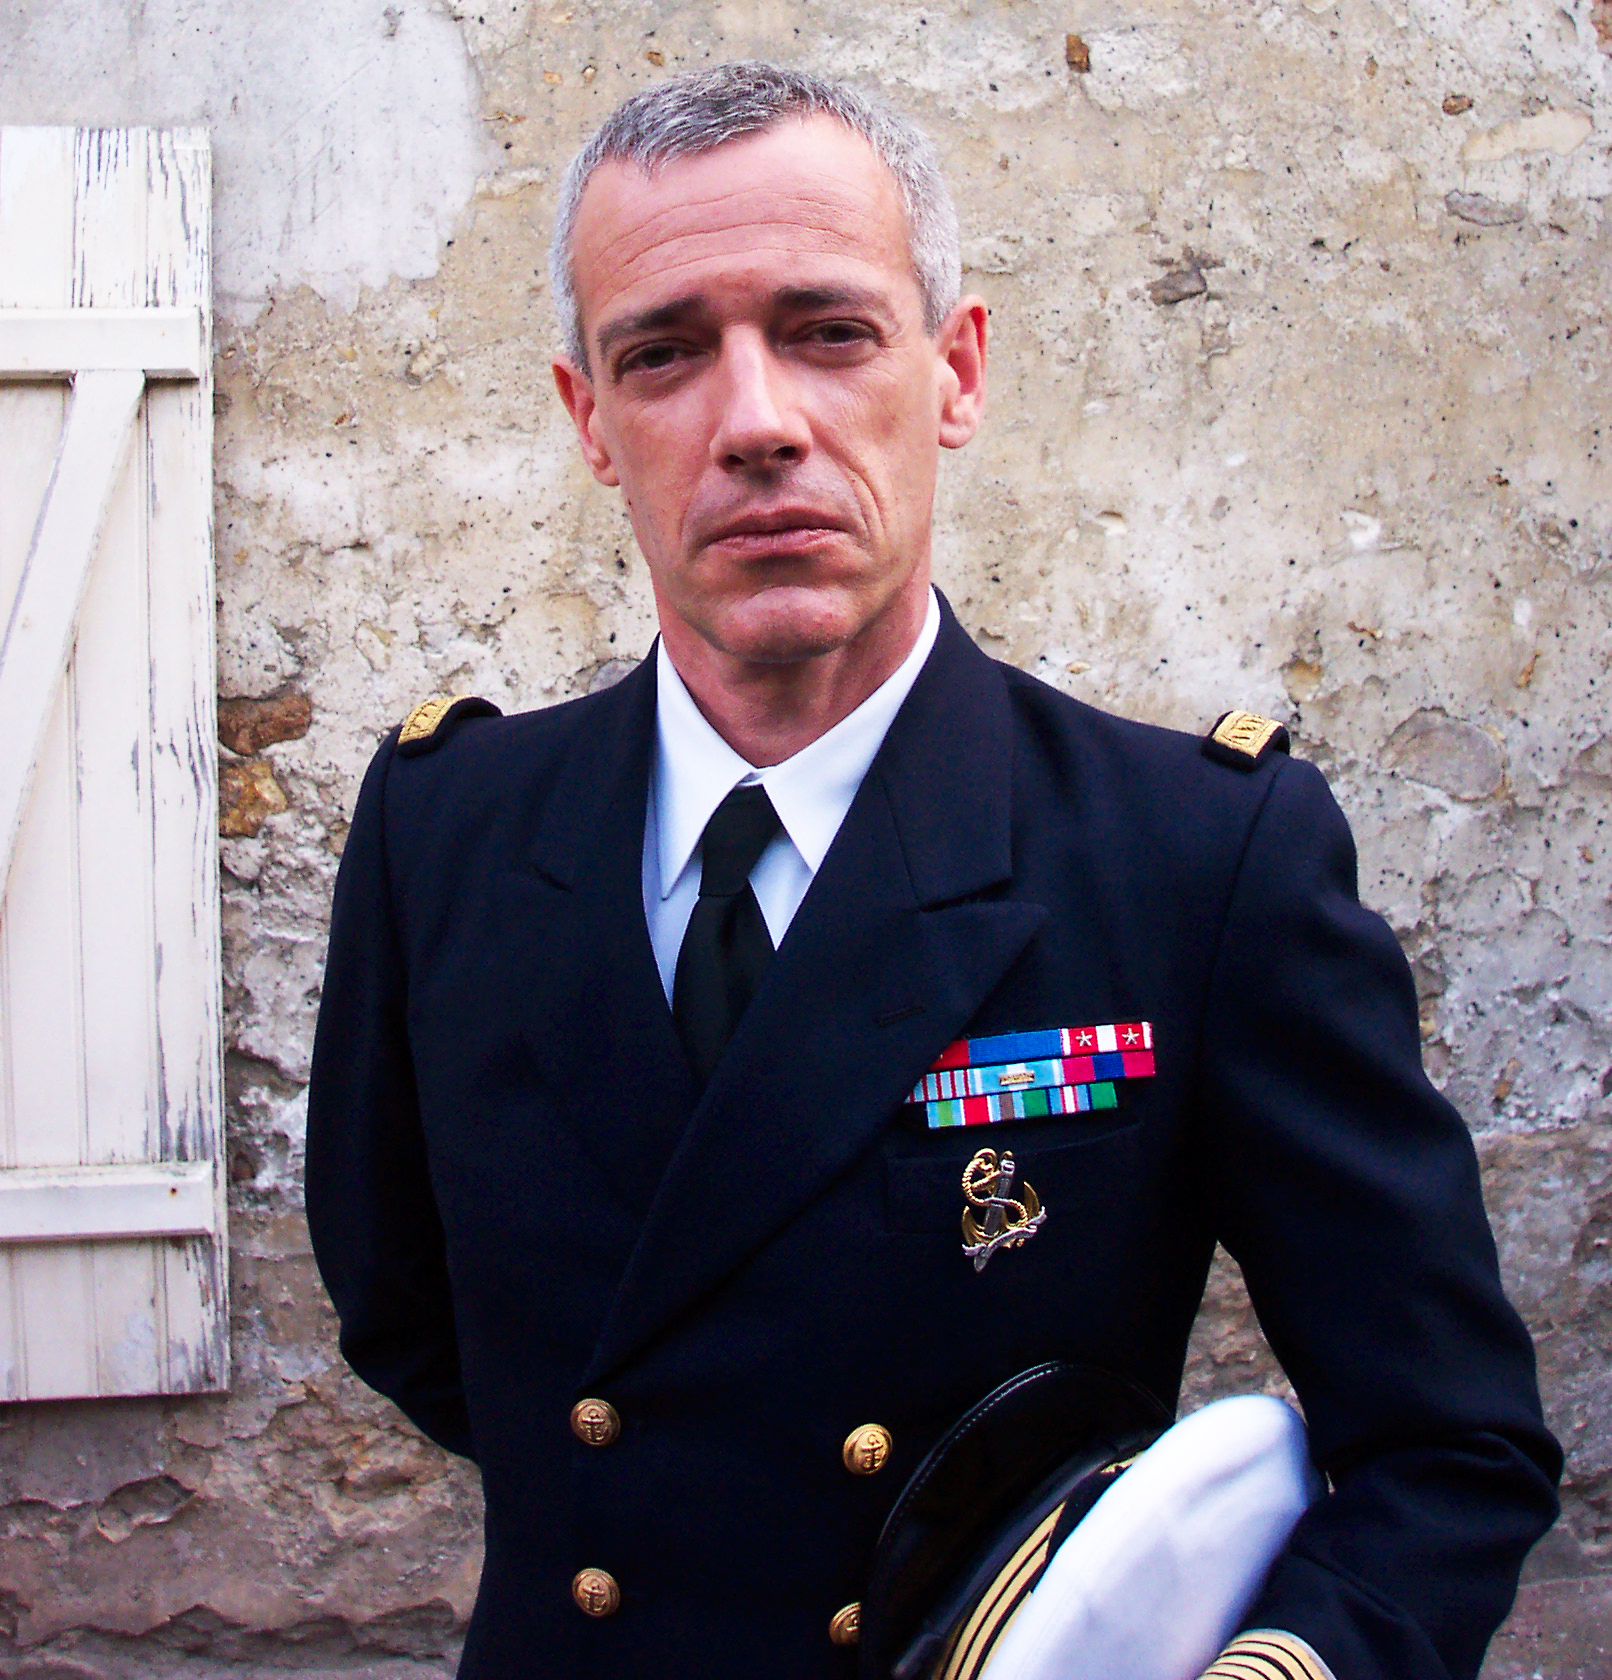 Alex Waltz in Opération Turquoise (2007)